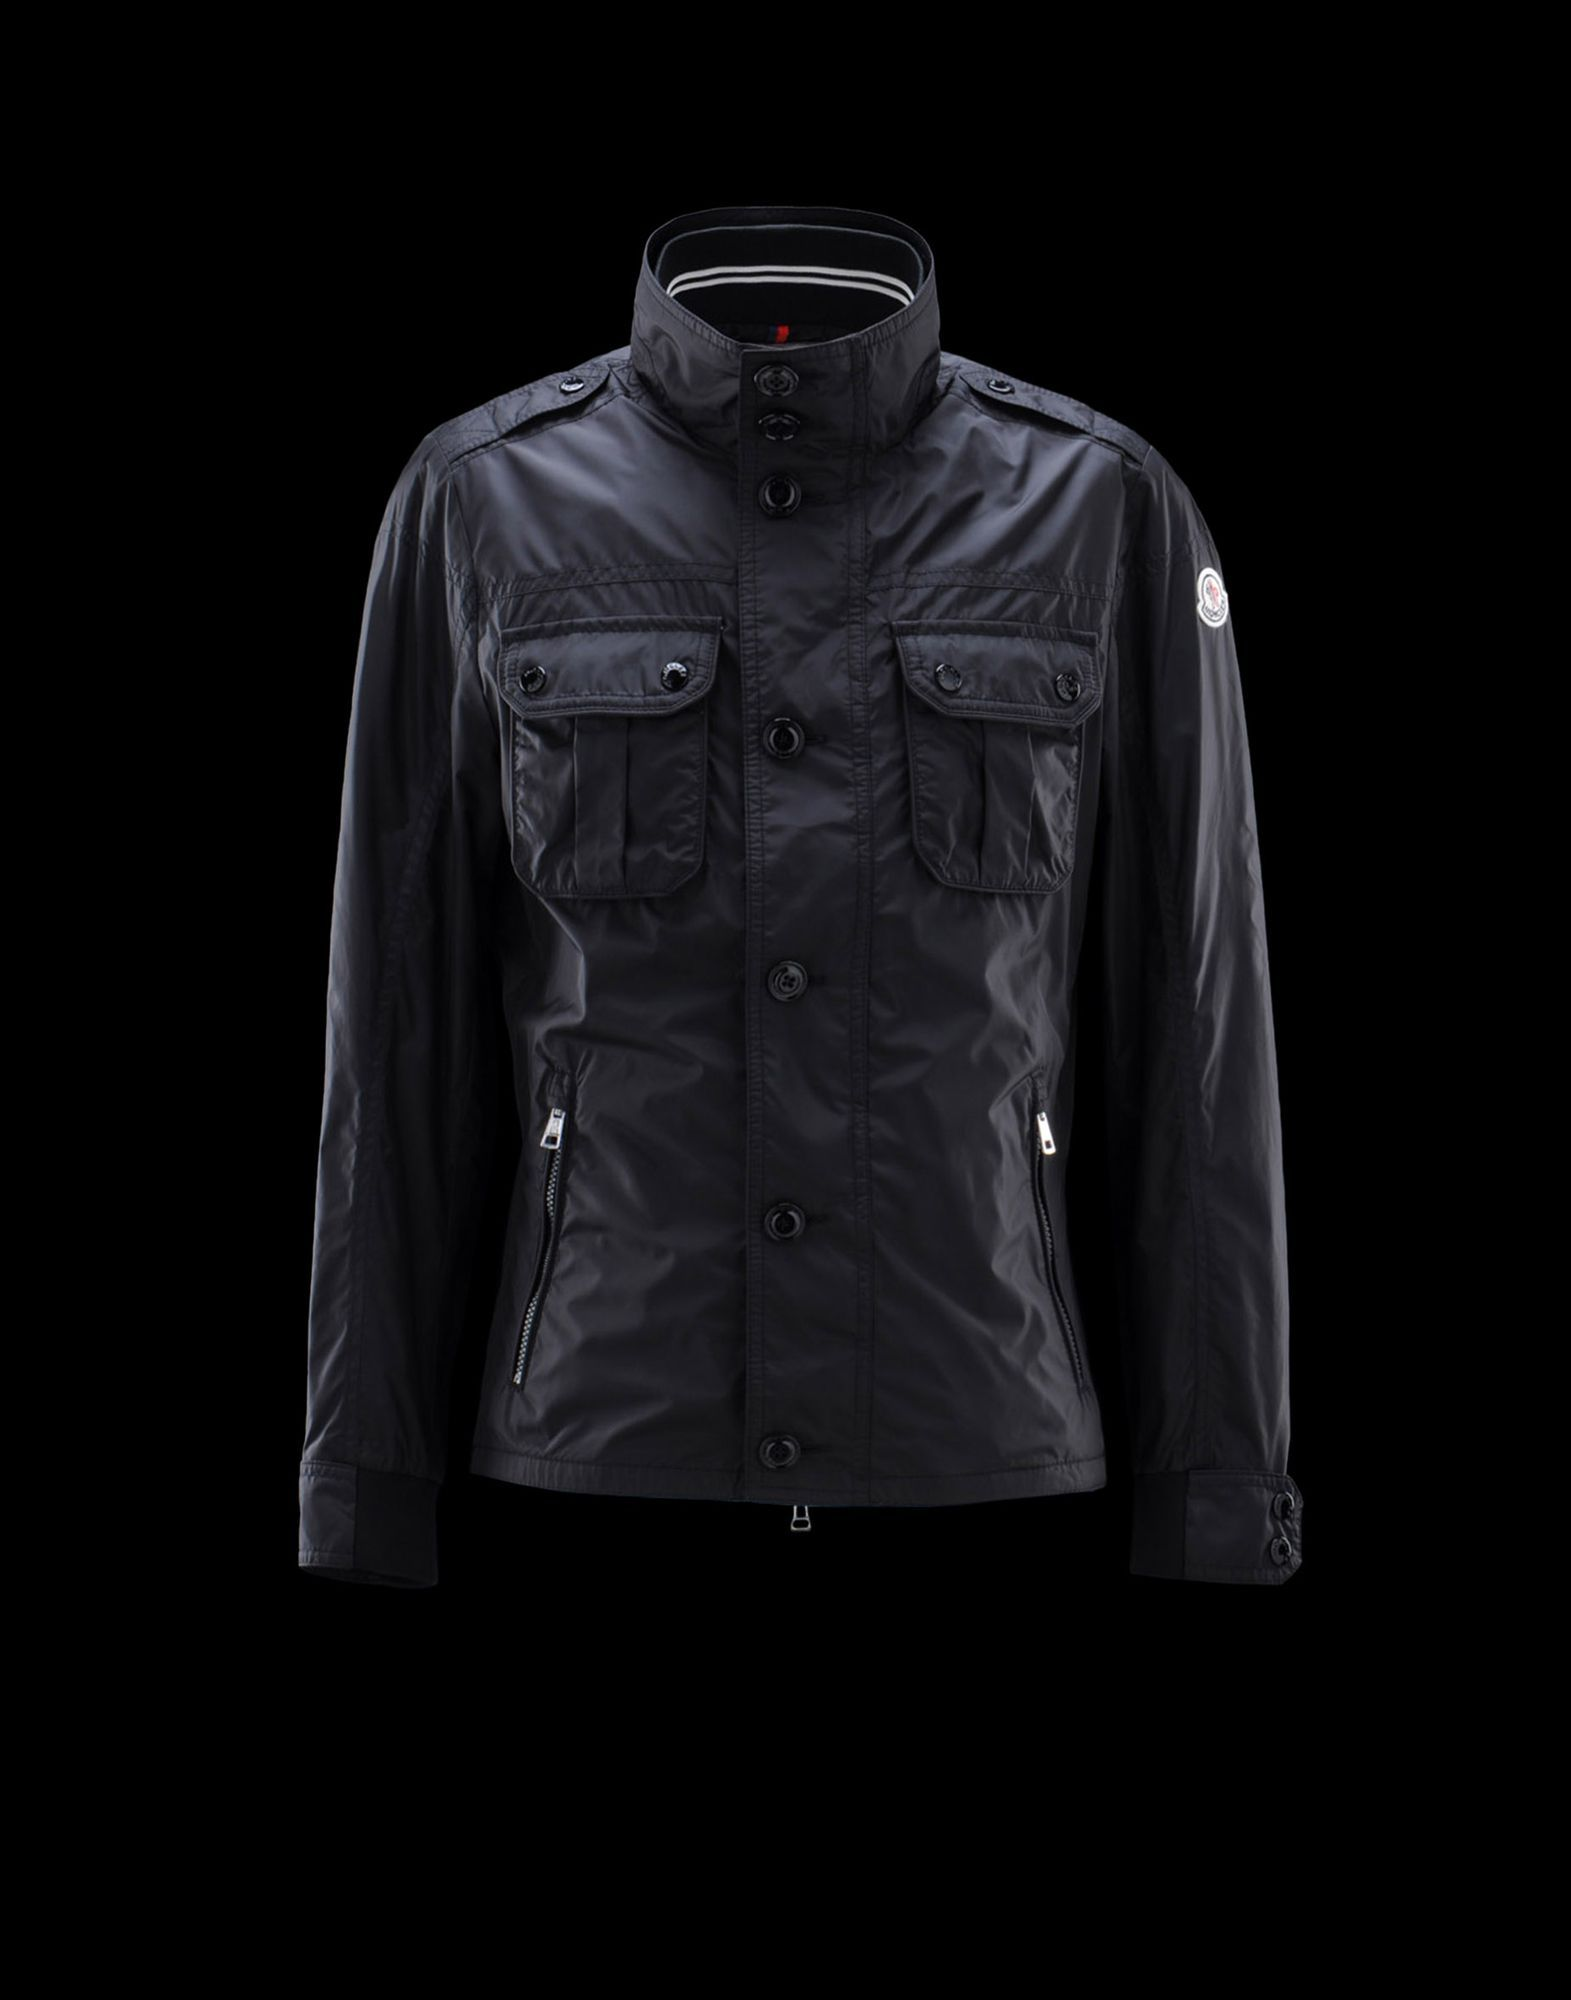 247d620c268d MONCLER Men - Spring/Summer 13 - OUTERWEAR - Jacket - MATE | Urban ...